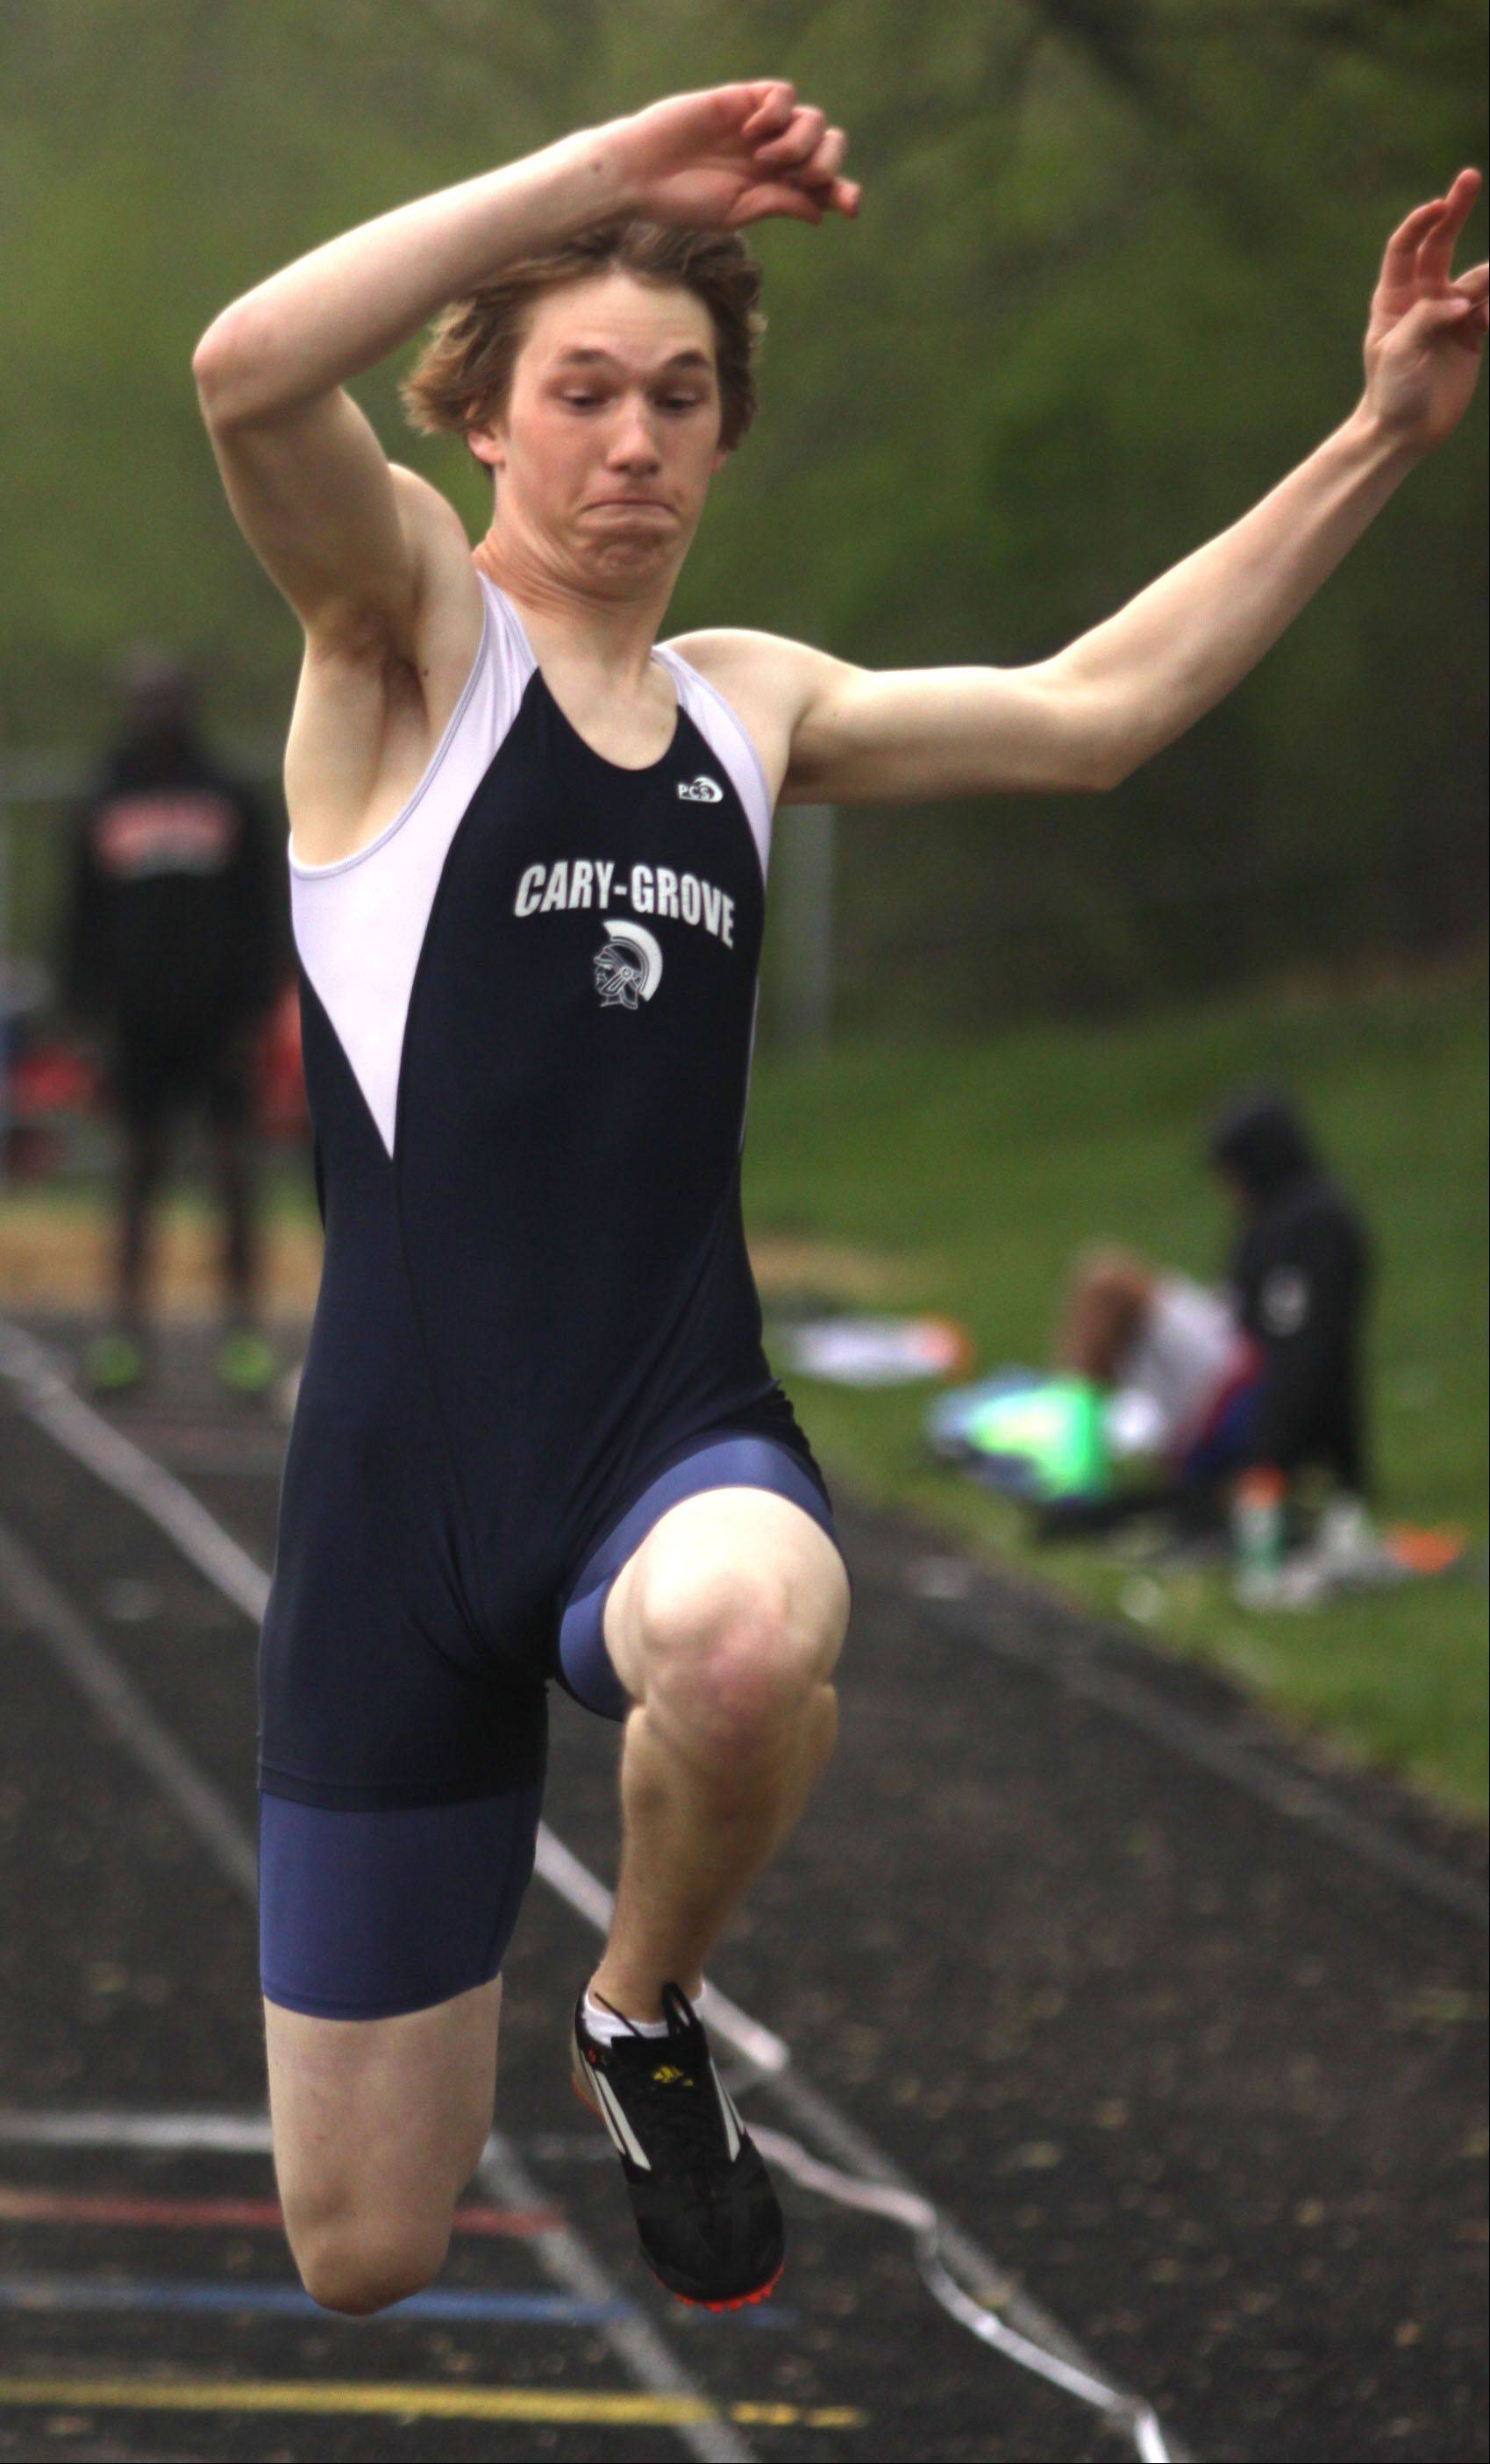 Cary-Grove's Frank San Filippo participates in the triple jump during the Fox Valley Conference Boys Track & Field Championships at Al Bohrer Field on the campus of Cary-Grove High School Friday night.